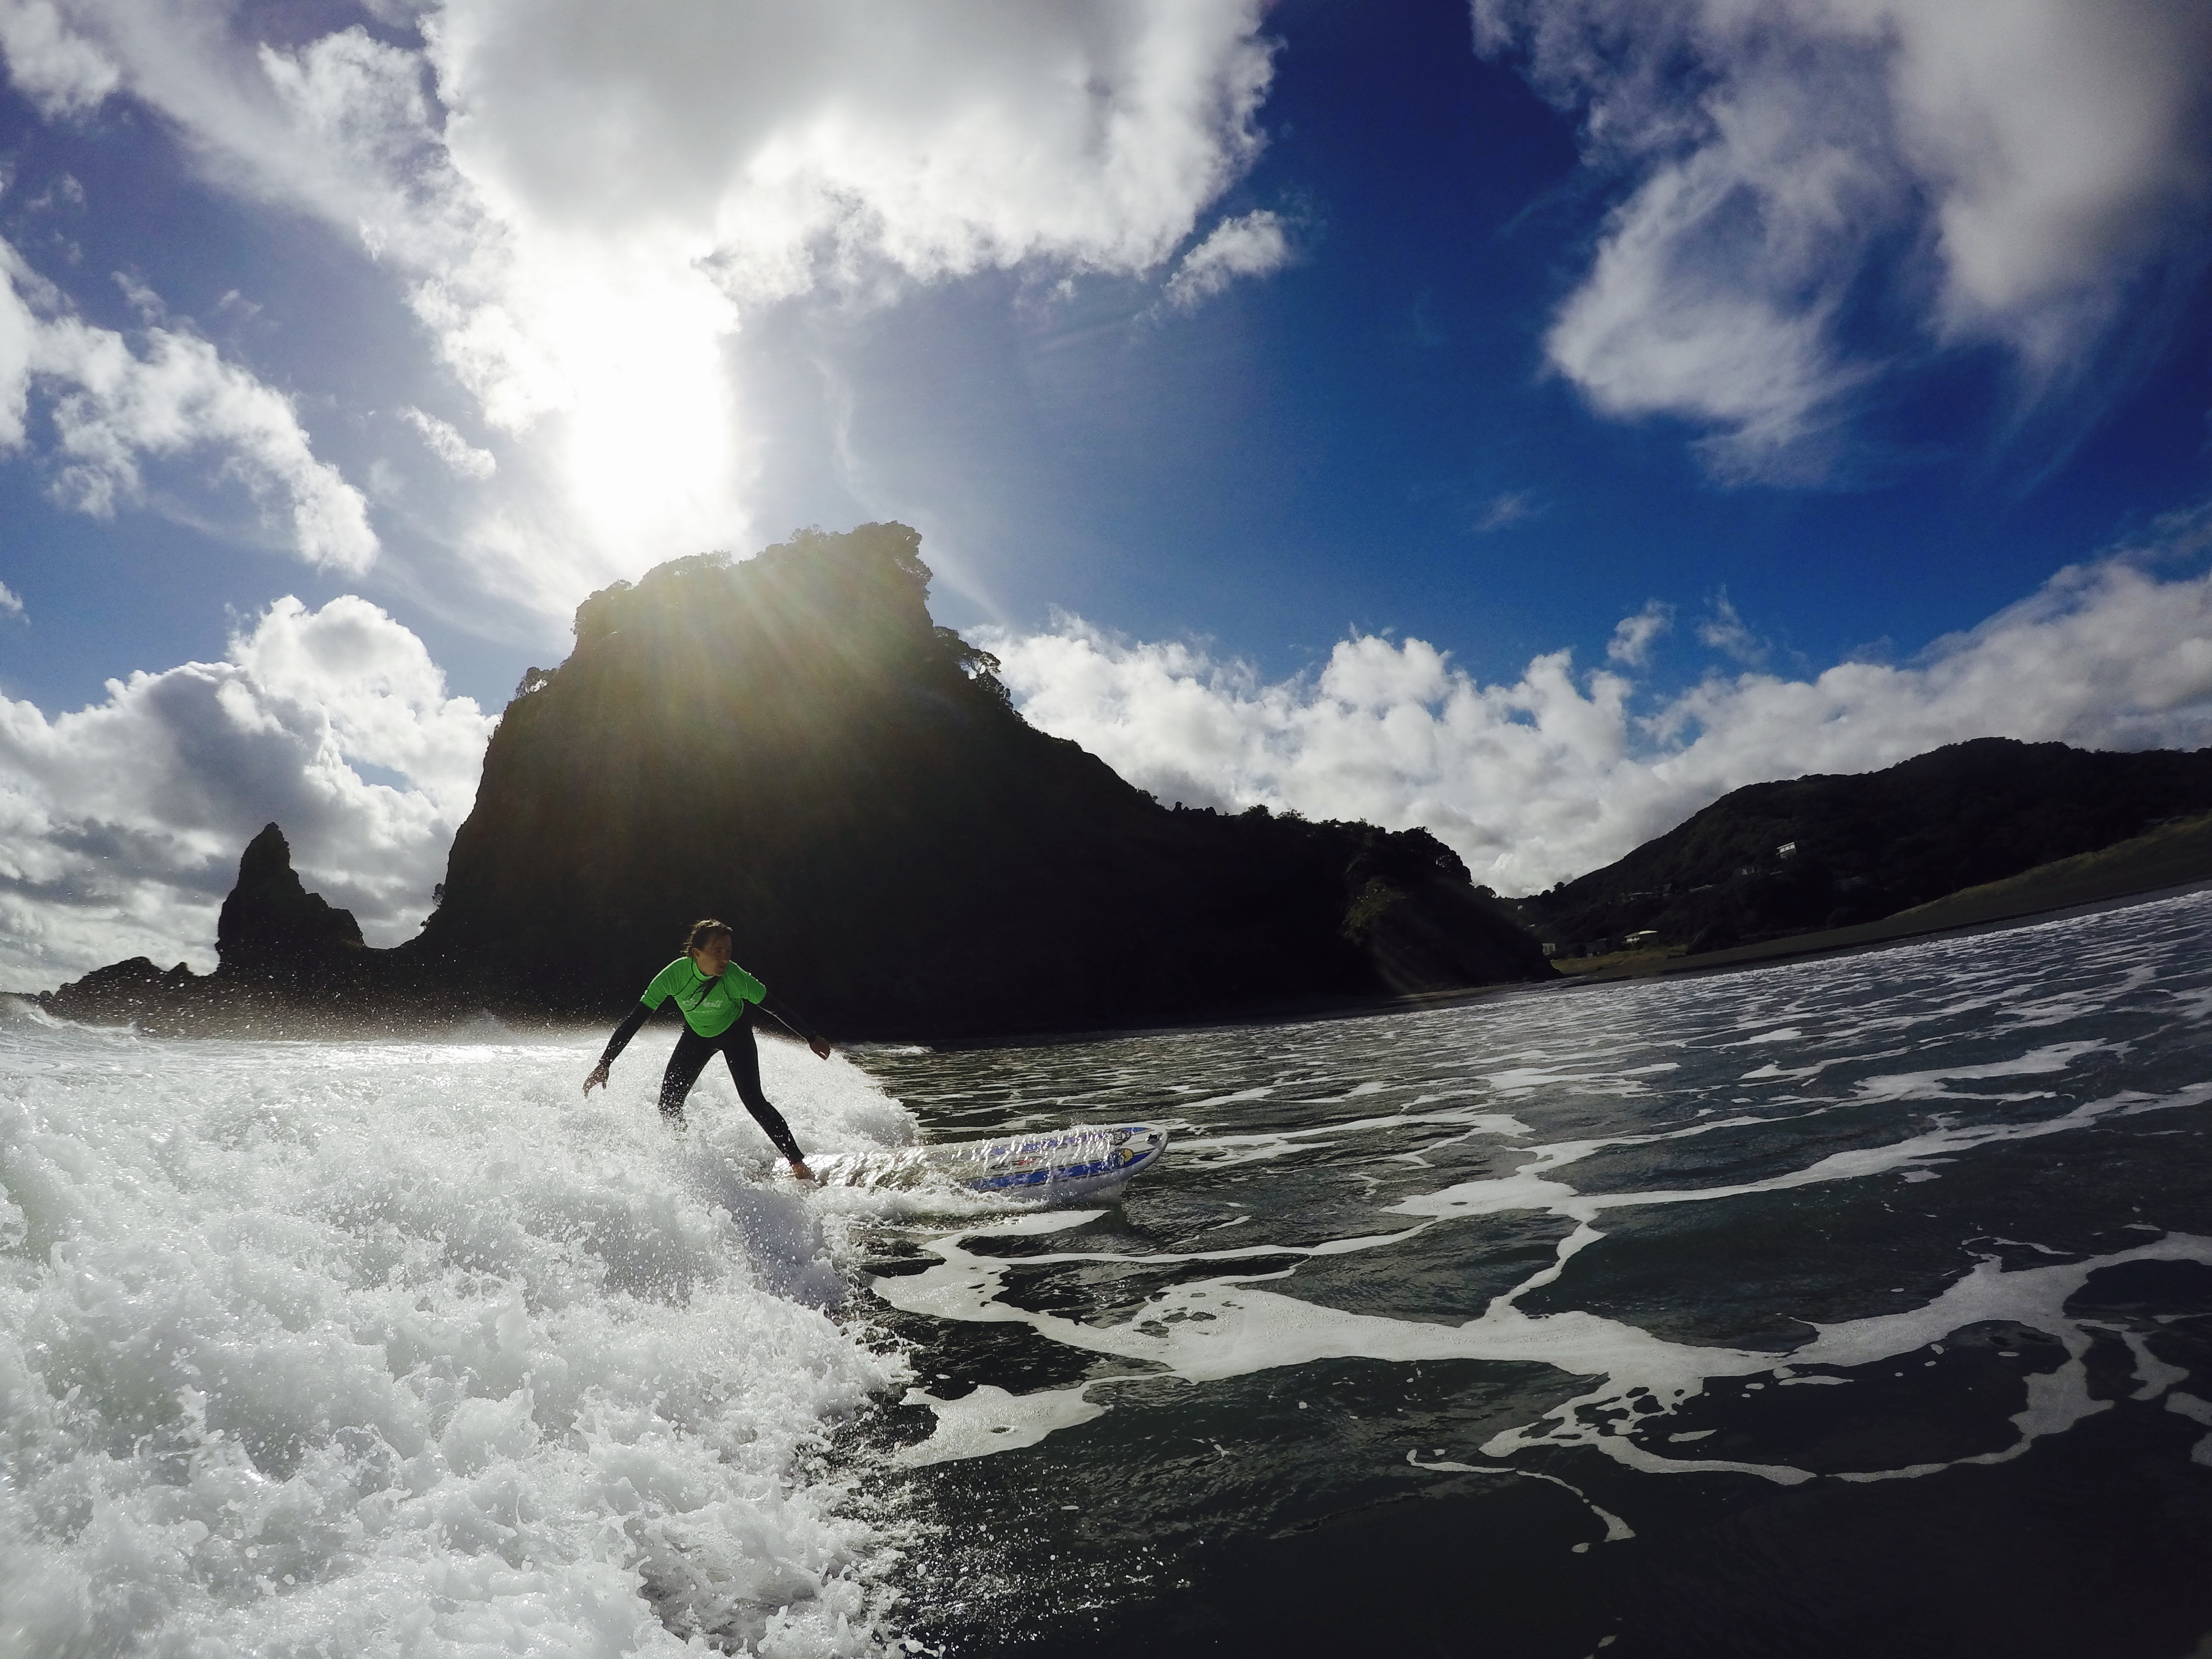 Surfing at Piha Beach